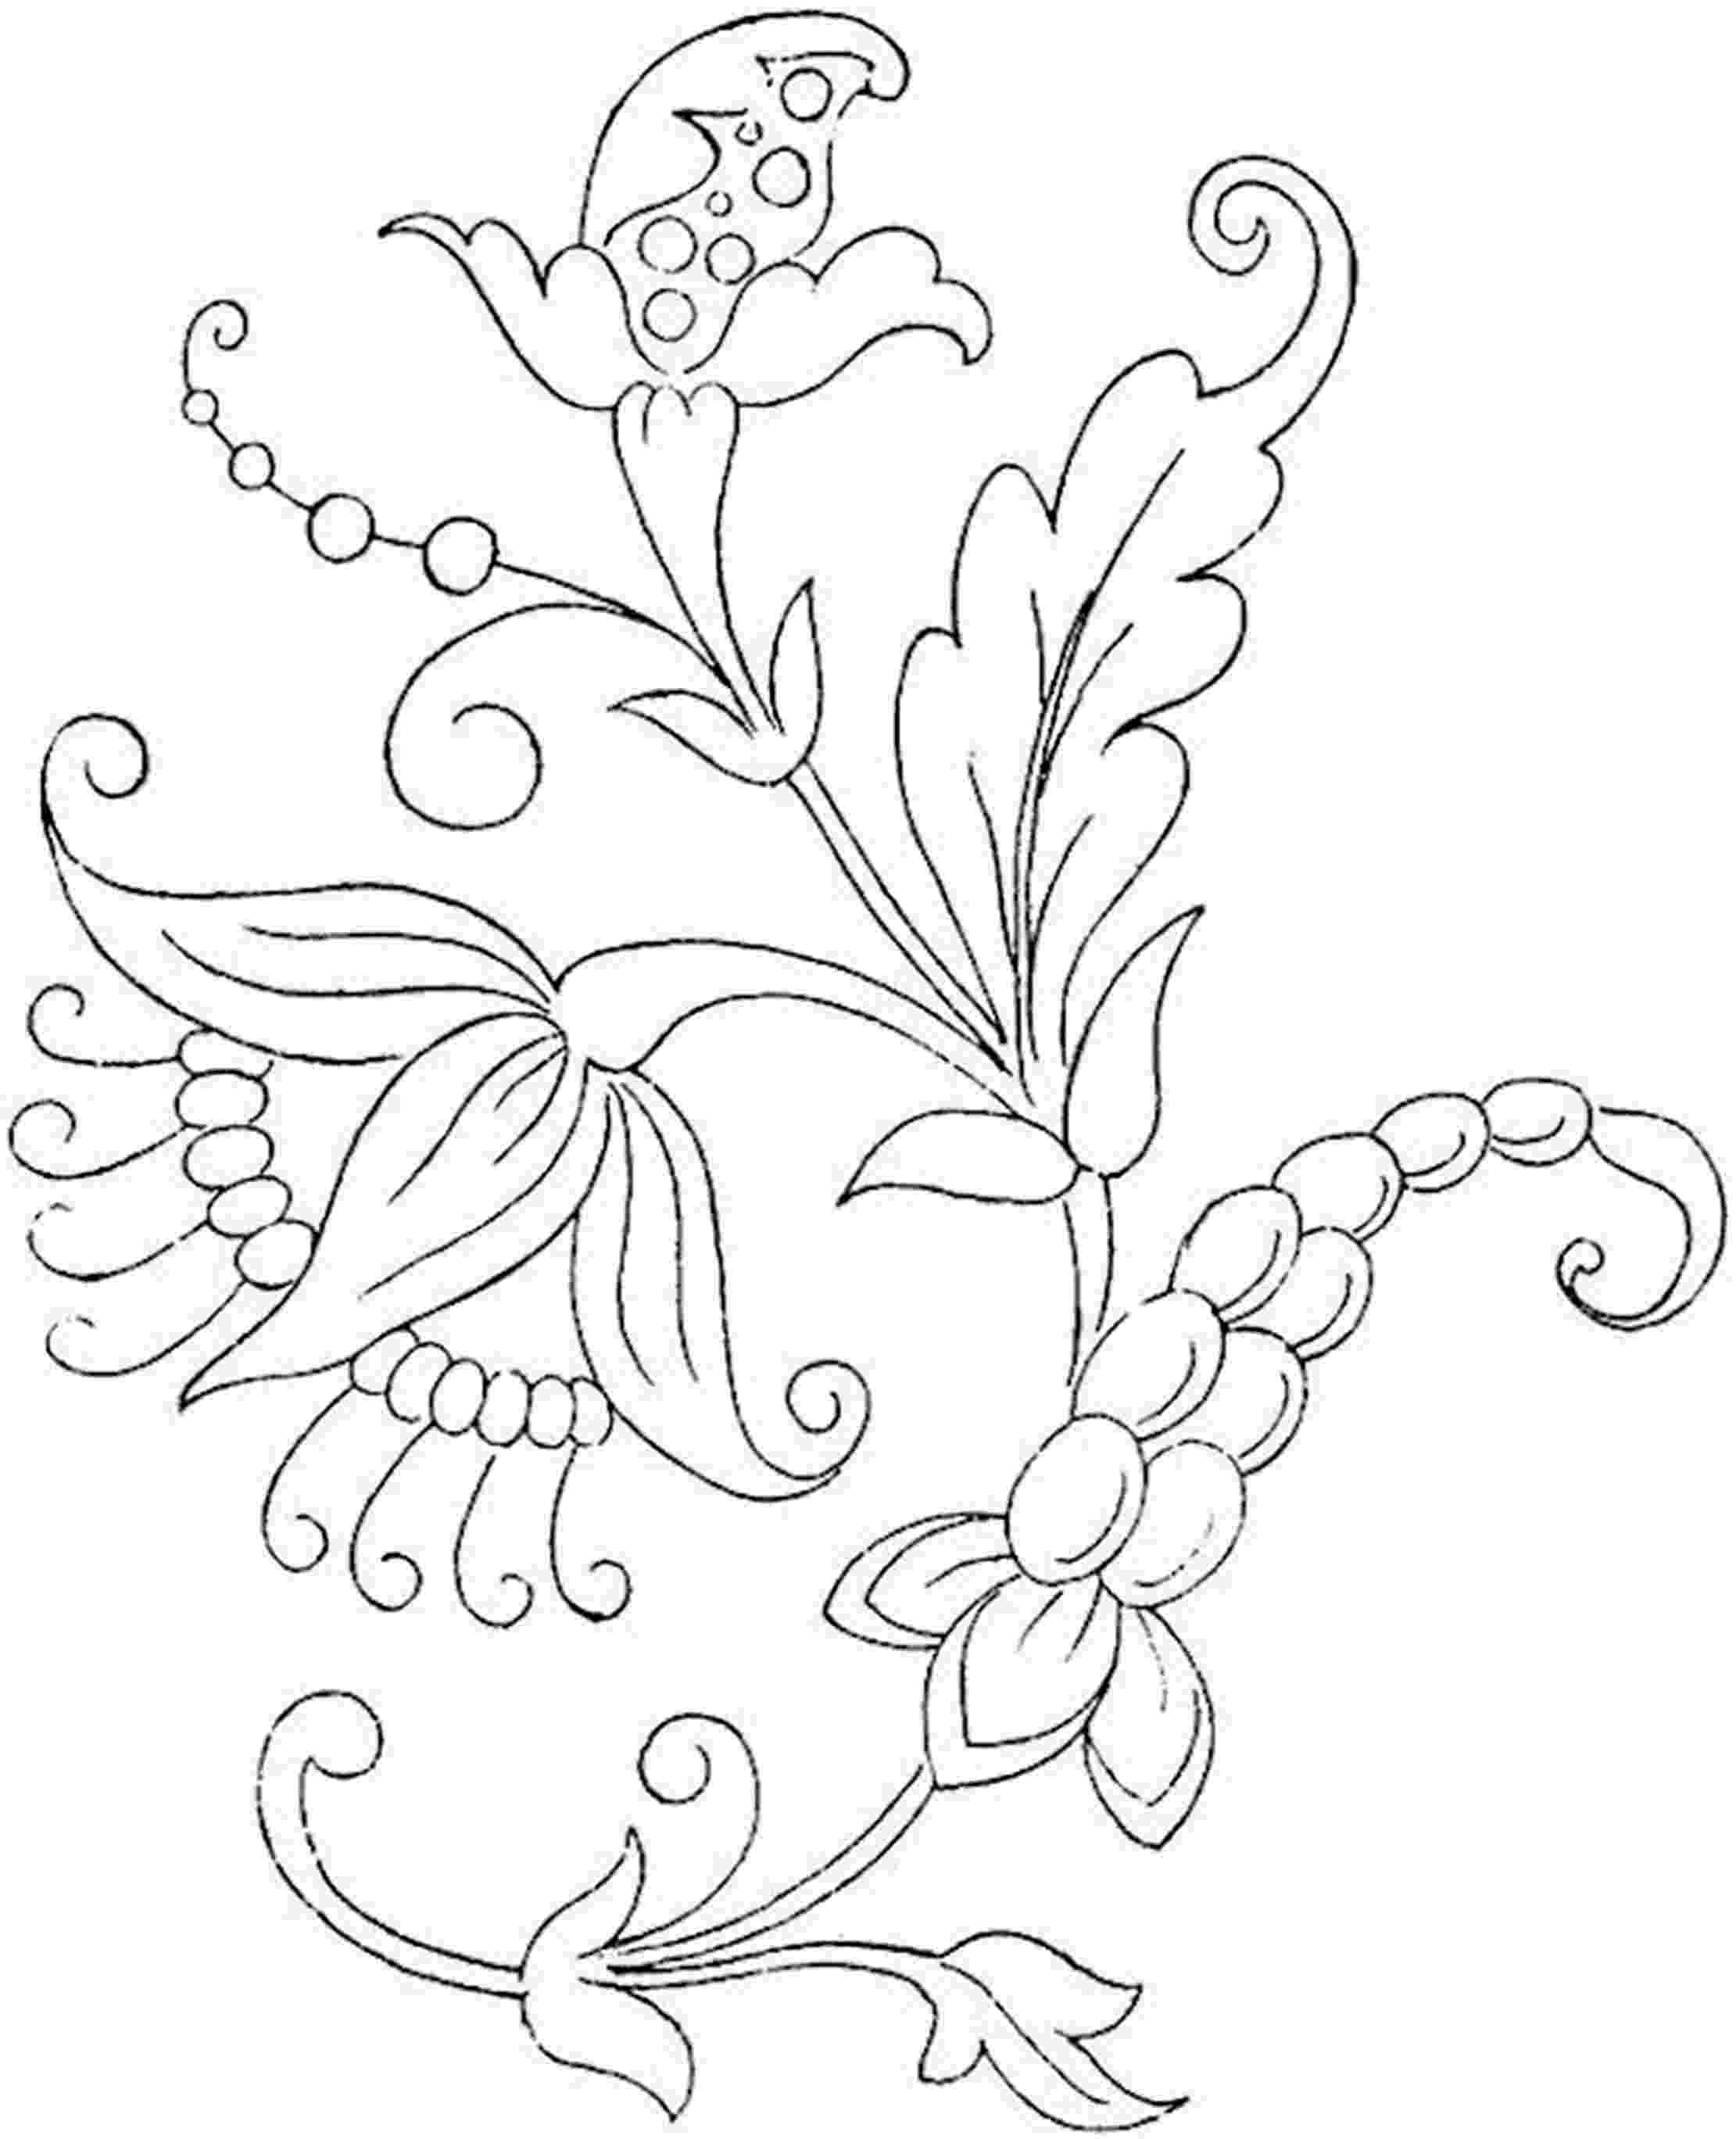 printable flower patterns to color free printable flower coloring pages for kids best flower to color patterns printable